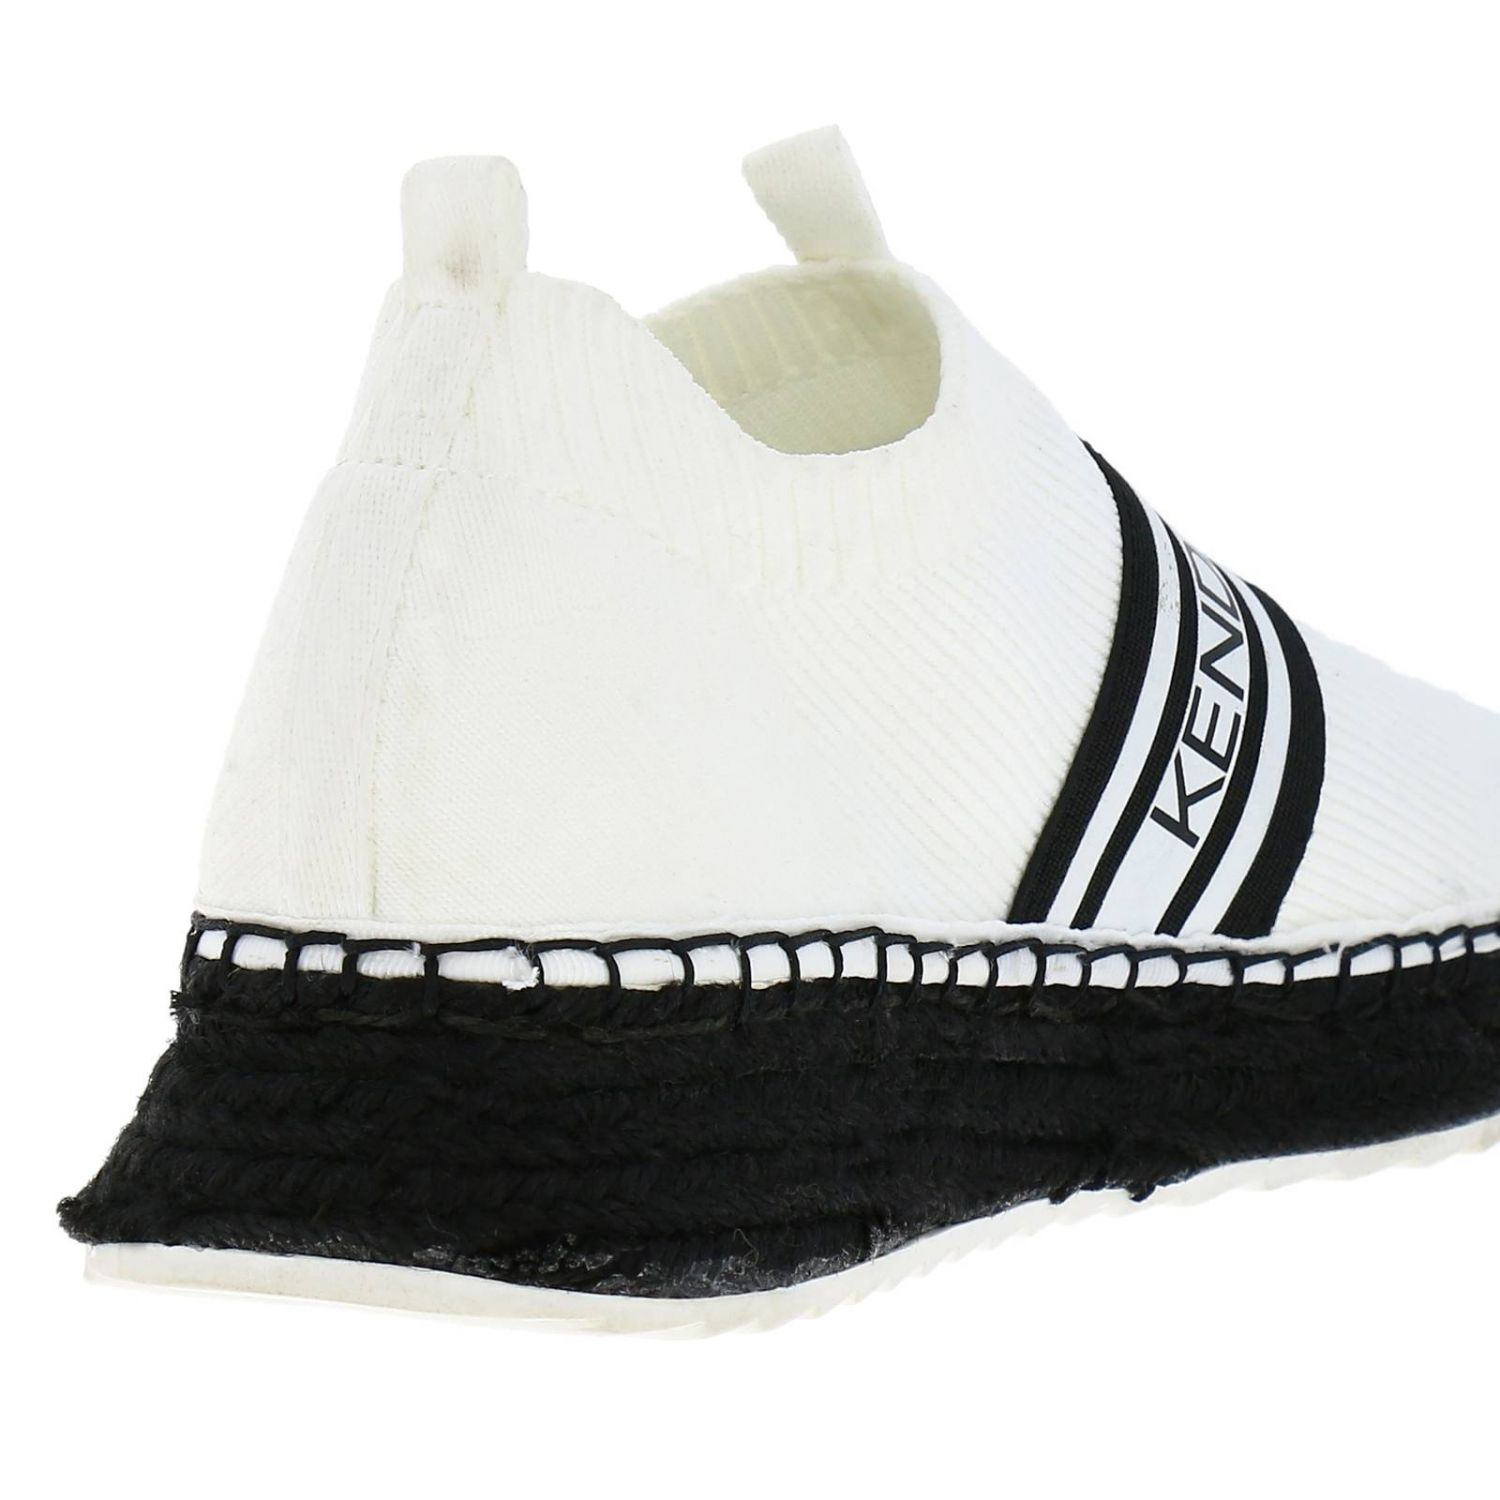 Sneakers KK Jake-B slip on a calza in tessuto stretch con maxi logo Kendall+Kylie bianco 4